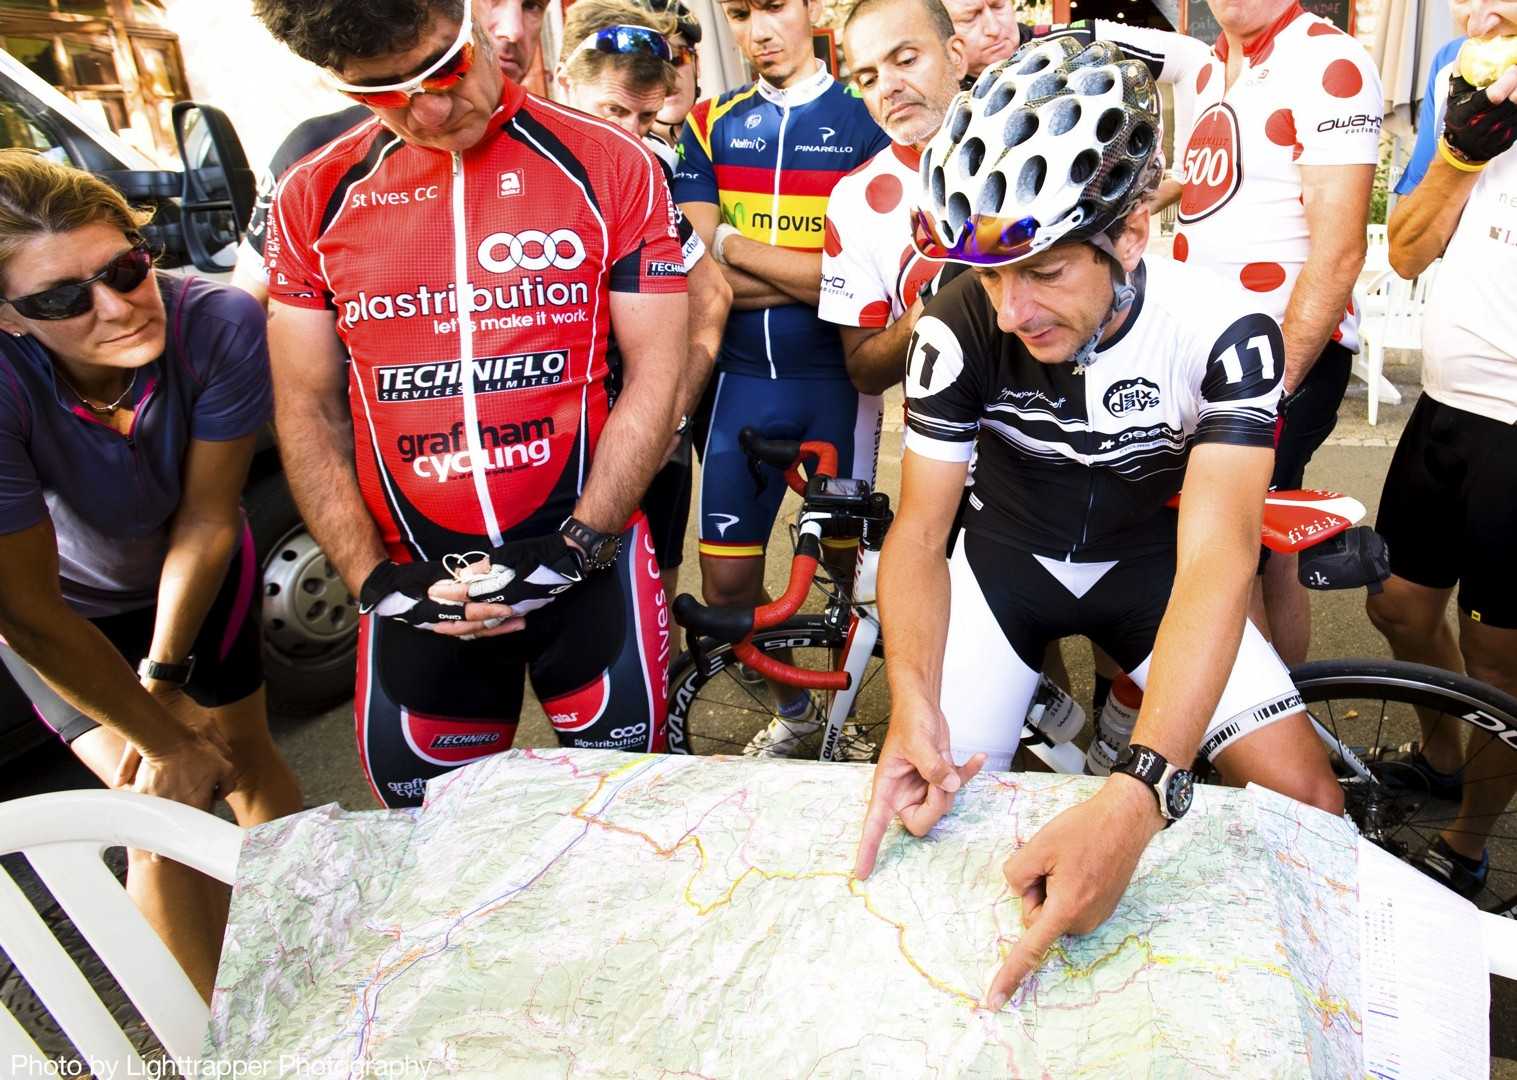 route-map-guided-road-cycling-provence.jpg - France - Provence - Le Ventoux a Velo - Guided Road Cycling Holiday - Road Cycling